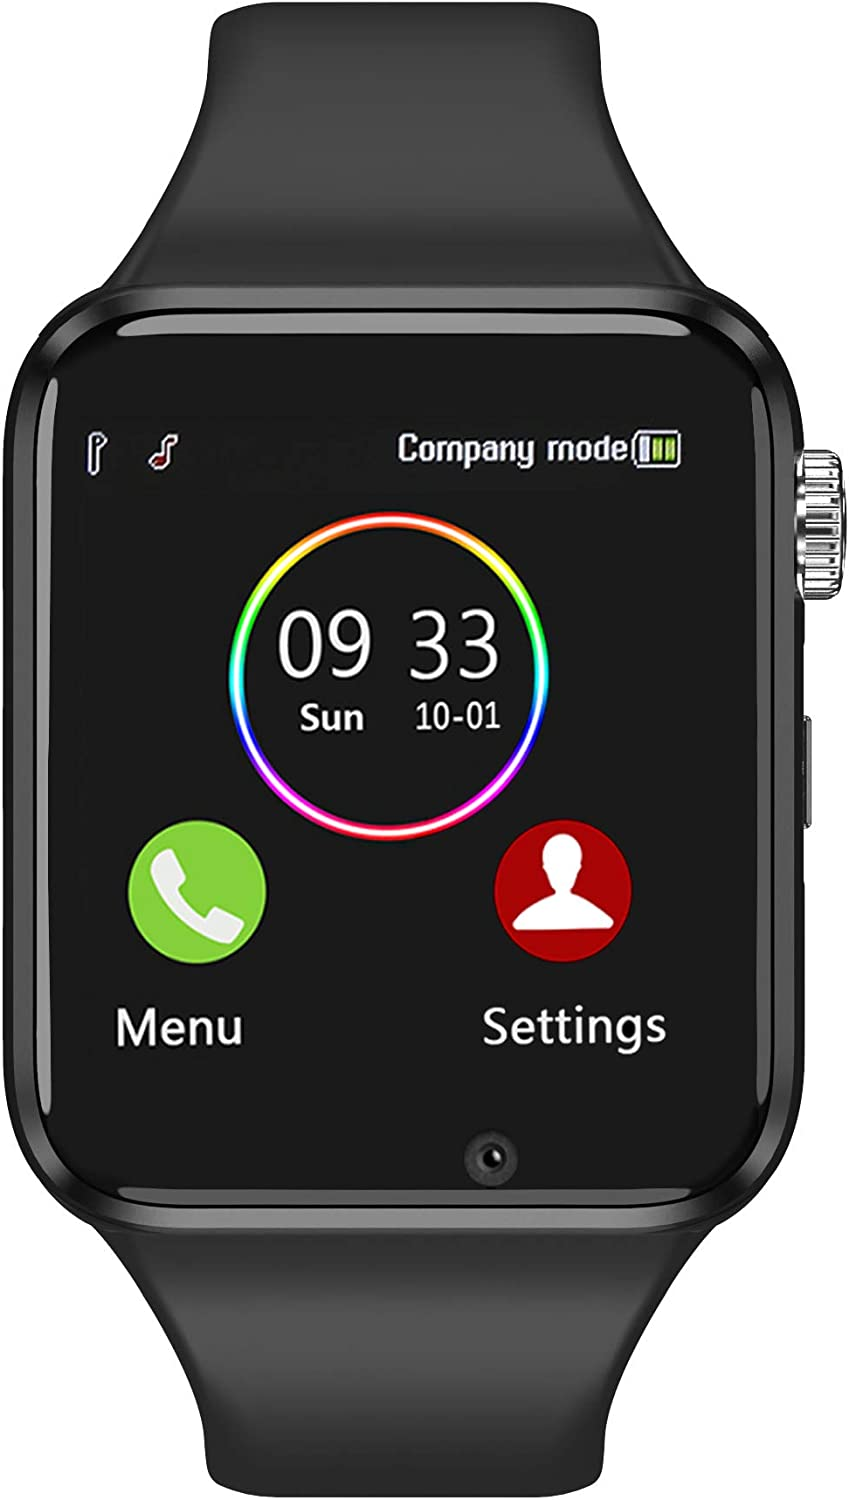 Smart Watch for Android Phones Compatible with iPhone Samsung, Sazooy Fitness Tracker Touch Screen Bluetooth Smartwatch with Sim SD Card Slot Camera Support Calls Messages for Women Men Kids (Black)